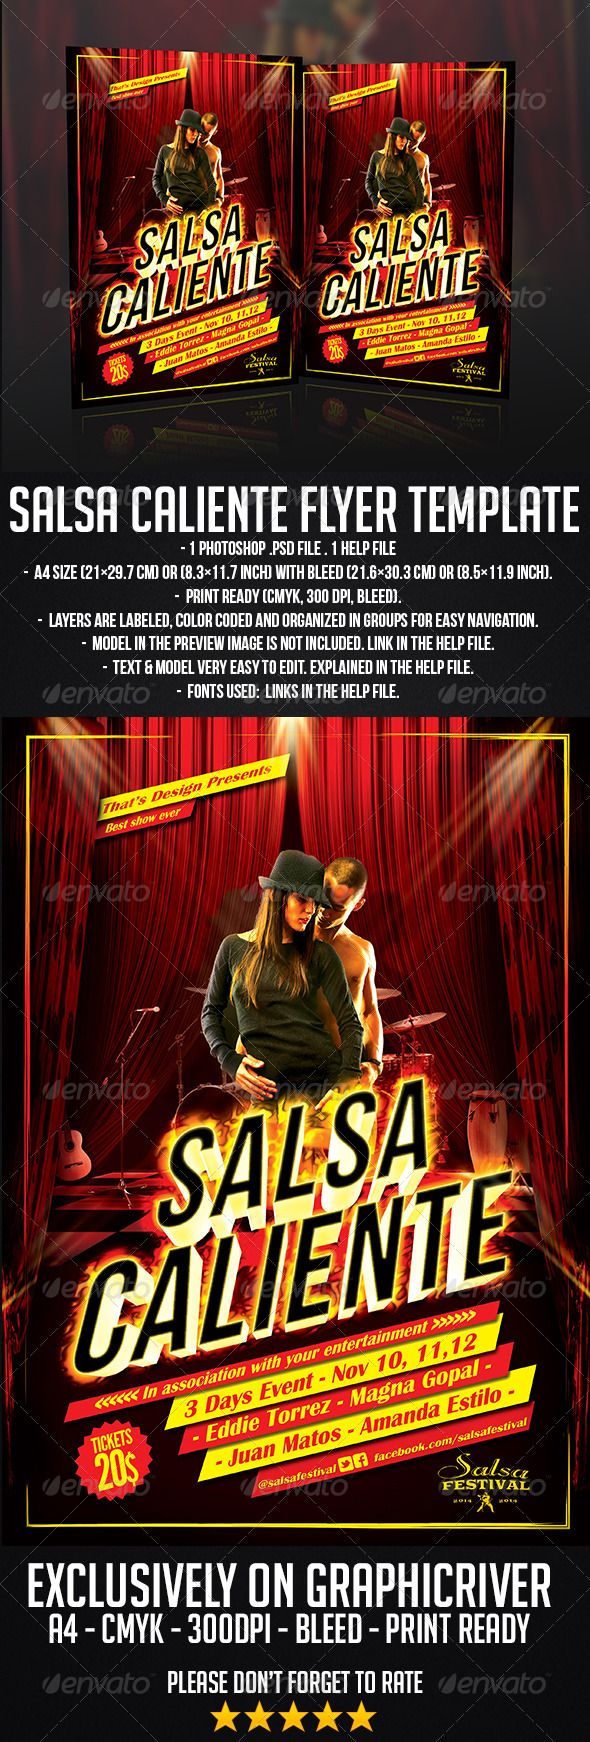 Salsa Caliente Flyer Template #GraphicRiver Exclusively on GraphicRiver. Perfect for your event! Fully customizable! – 1 Photoshop .psd file – A4 size (21×29.7 cm) or (8.3×11.7 inch) with bleed (21.6×30.3 cm) or (8.5×11.9 inch) – Print Ready (CMYK, 300 DPI, bleed) – Layers are labeled, color coded and organized in groups for easy navigation. Font used: - Bebas Neue: .dafont /bebas-neue.font - Britannic: .fonts /font/linotype/britannic Model: Model is not included. It's just for preview image…